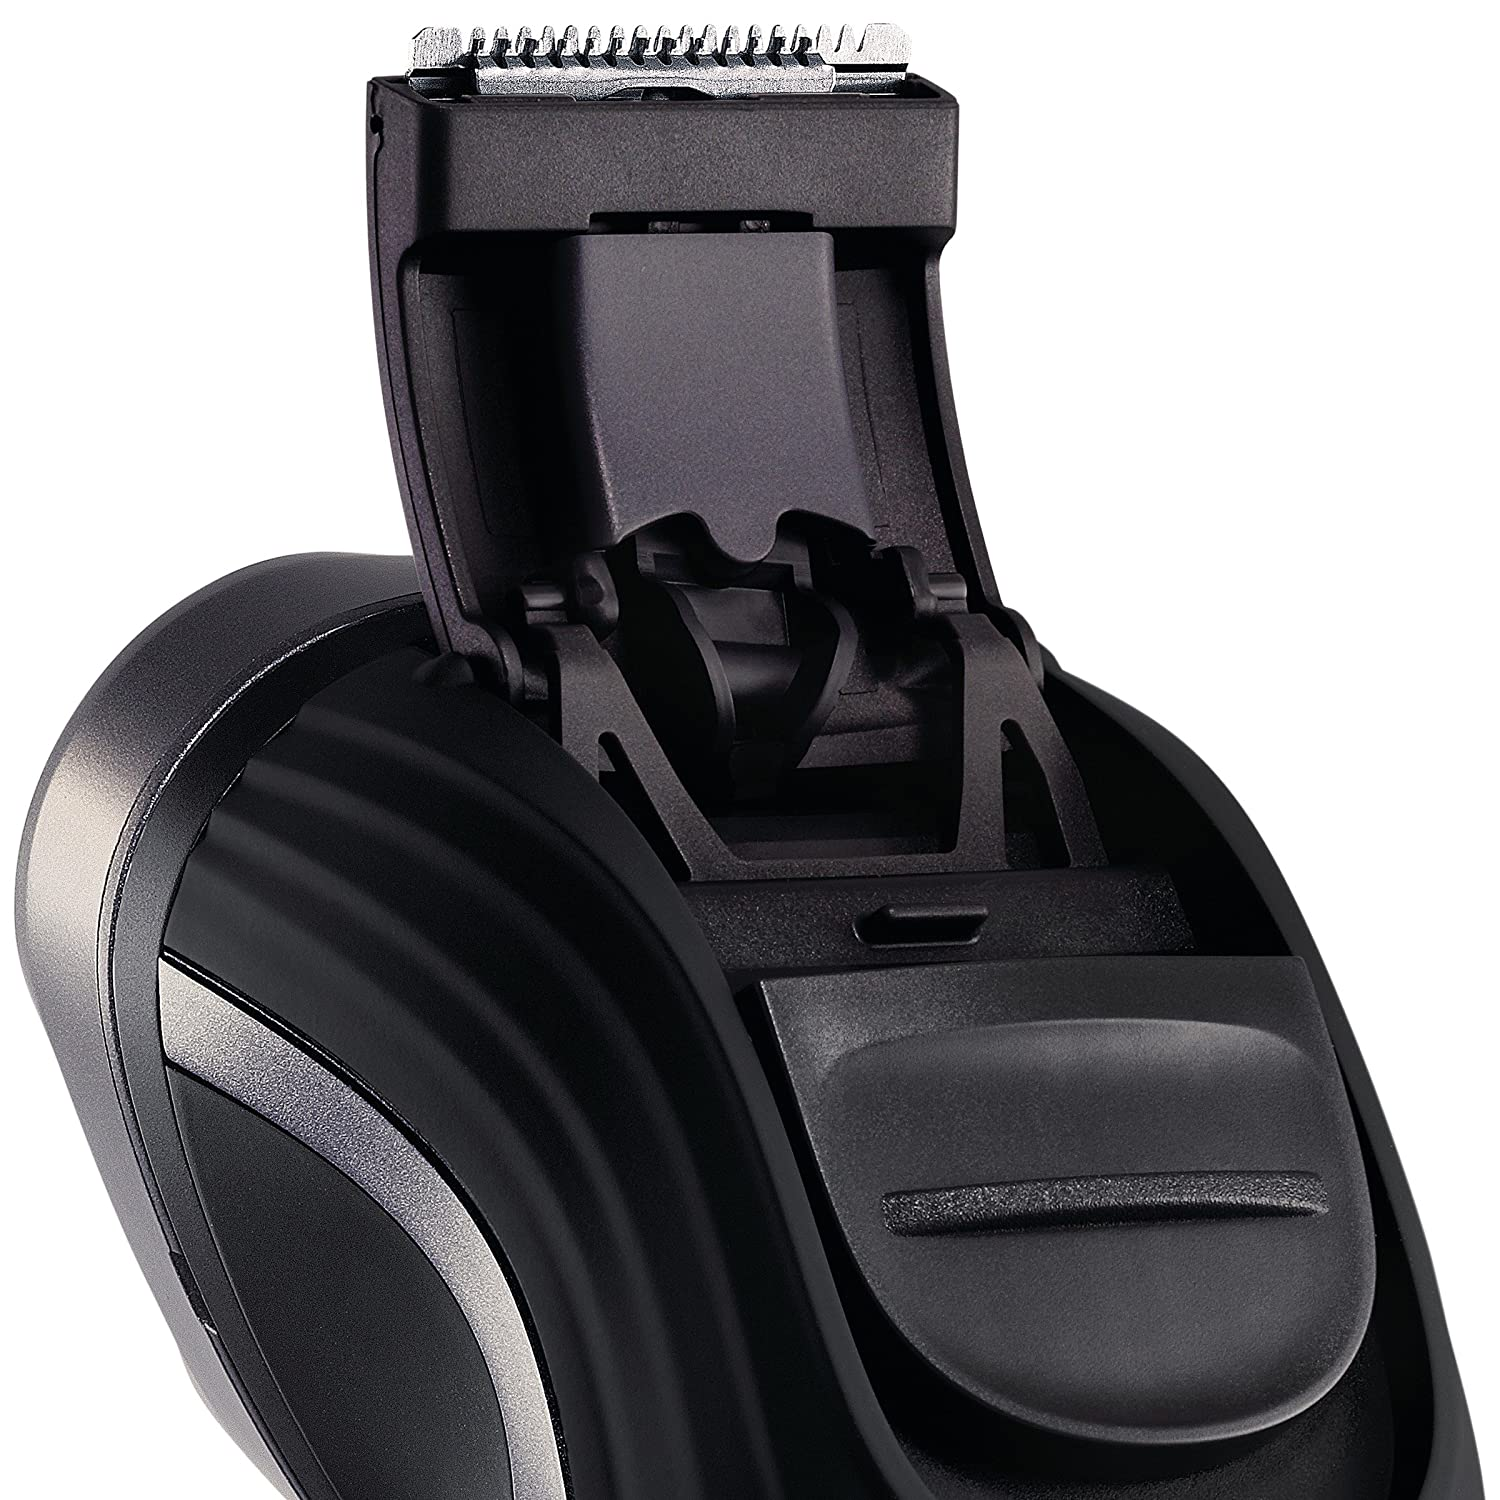 Philips Norelco 6948XL/41 Shaver ReviewElectric razor testimonial=Size 329